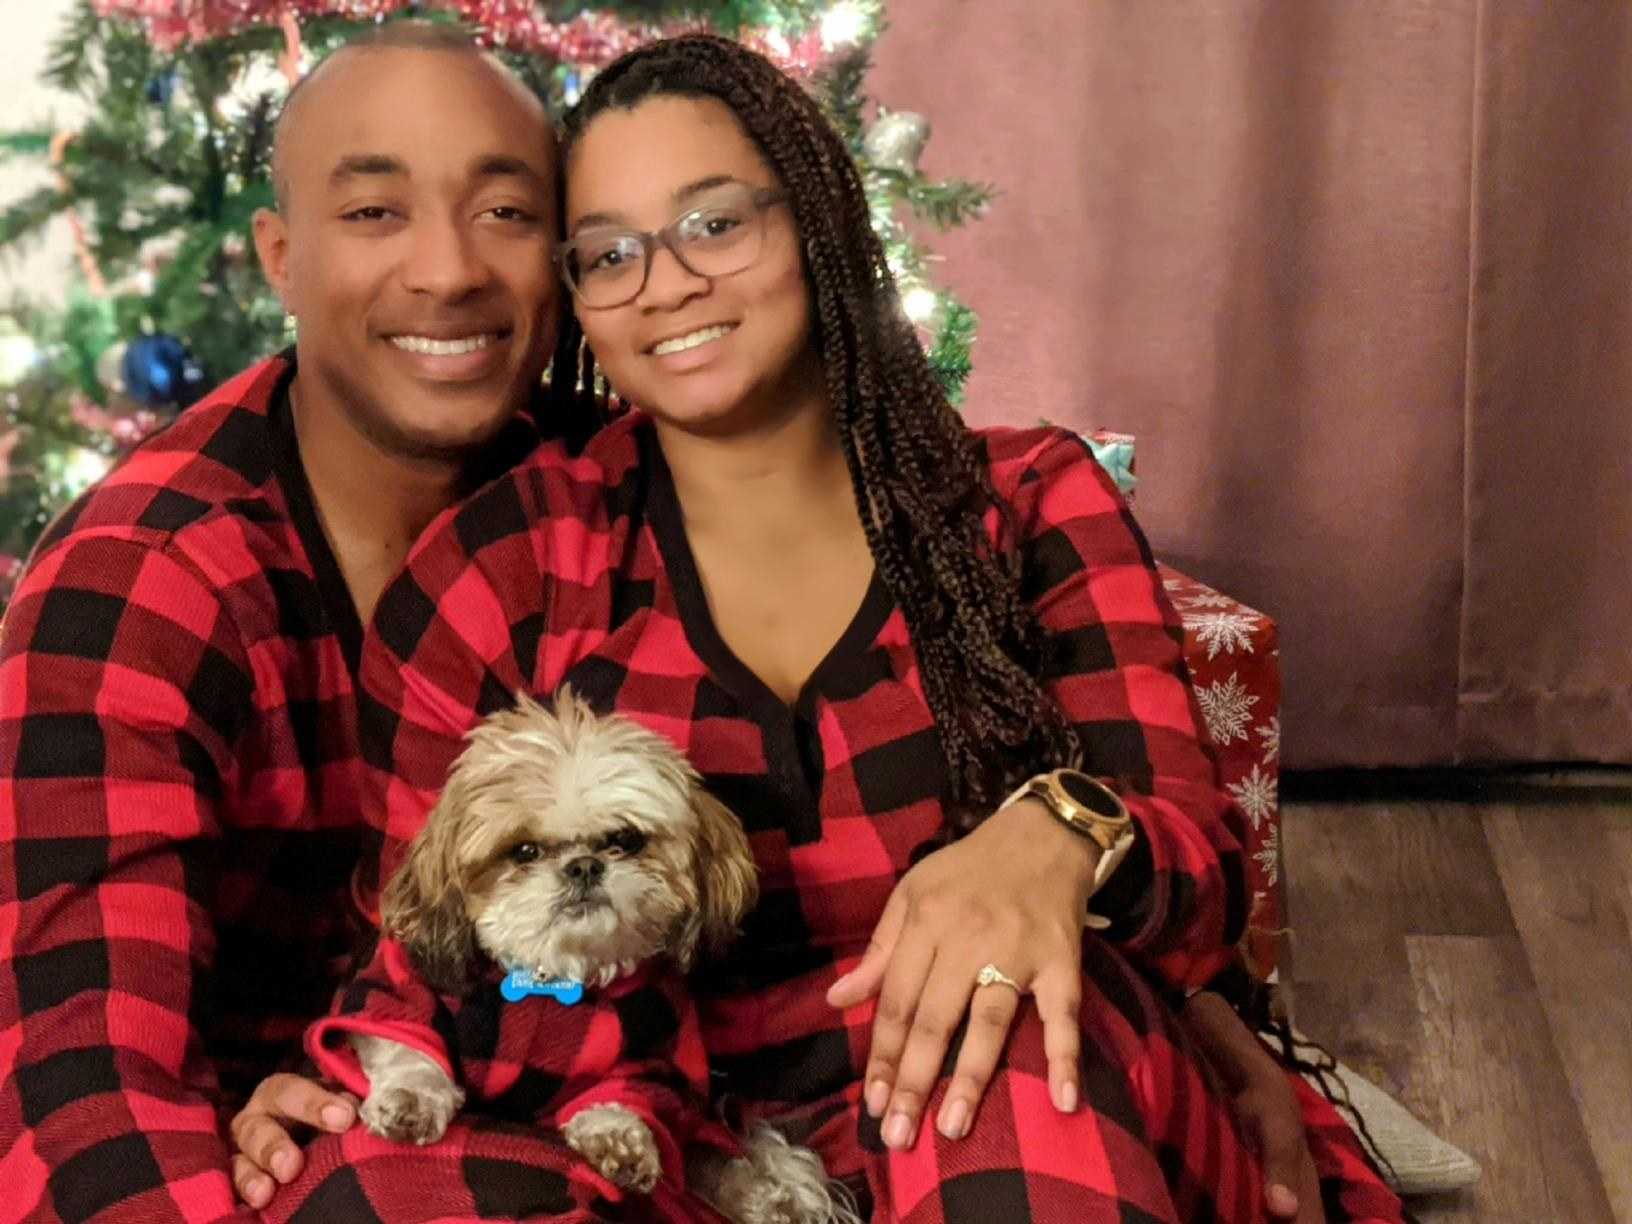 a couple and their dog wearing the red and black pajamas